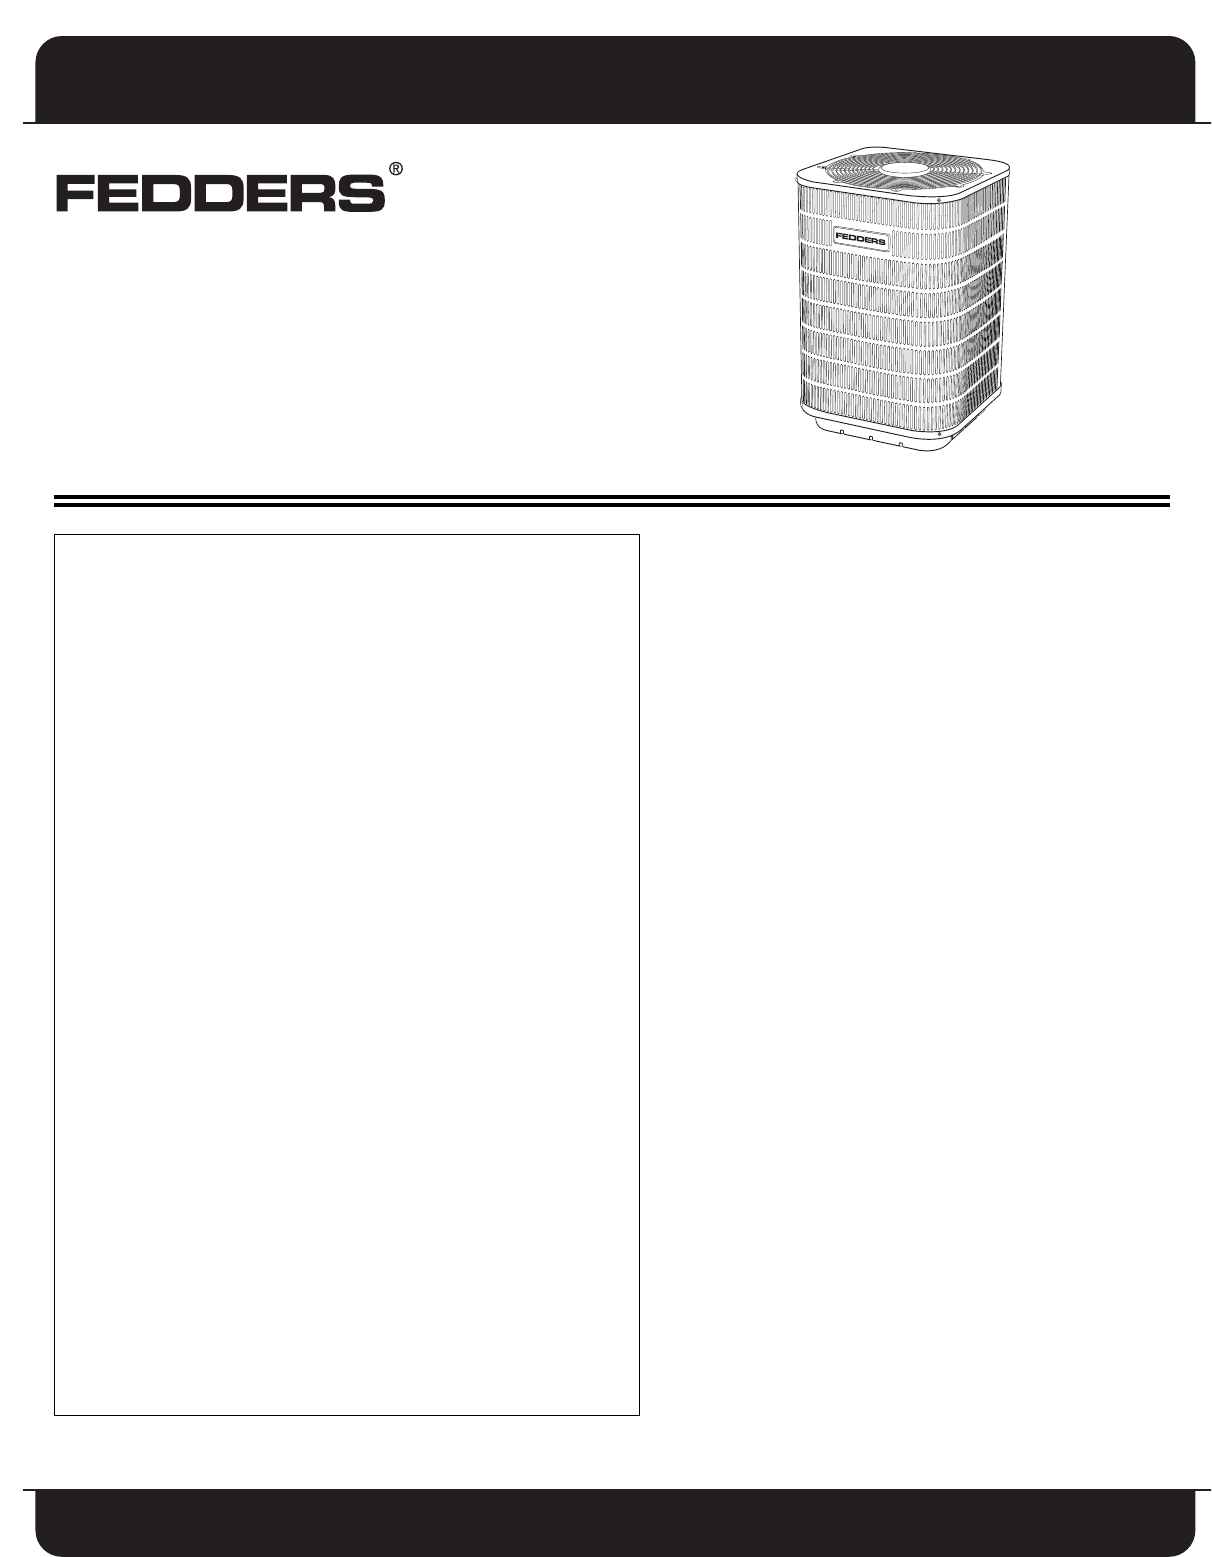 Fedders Split System Air Conditioner Users Manual on